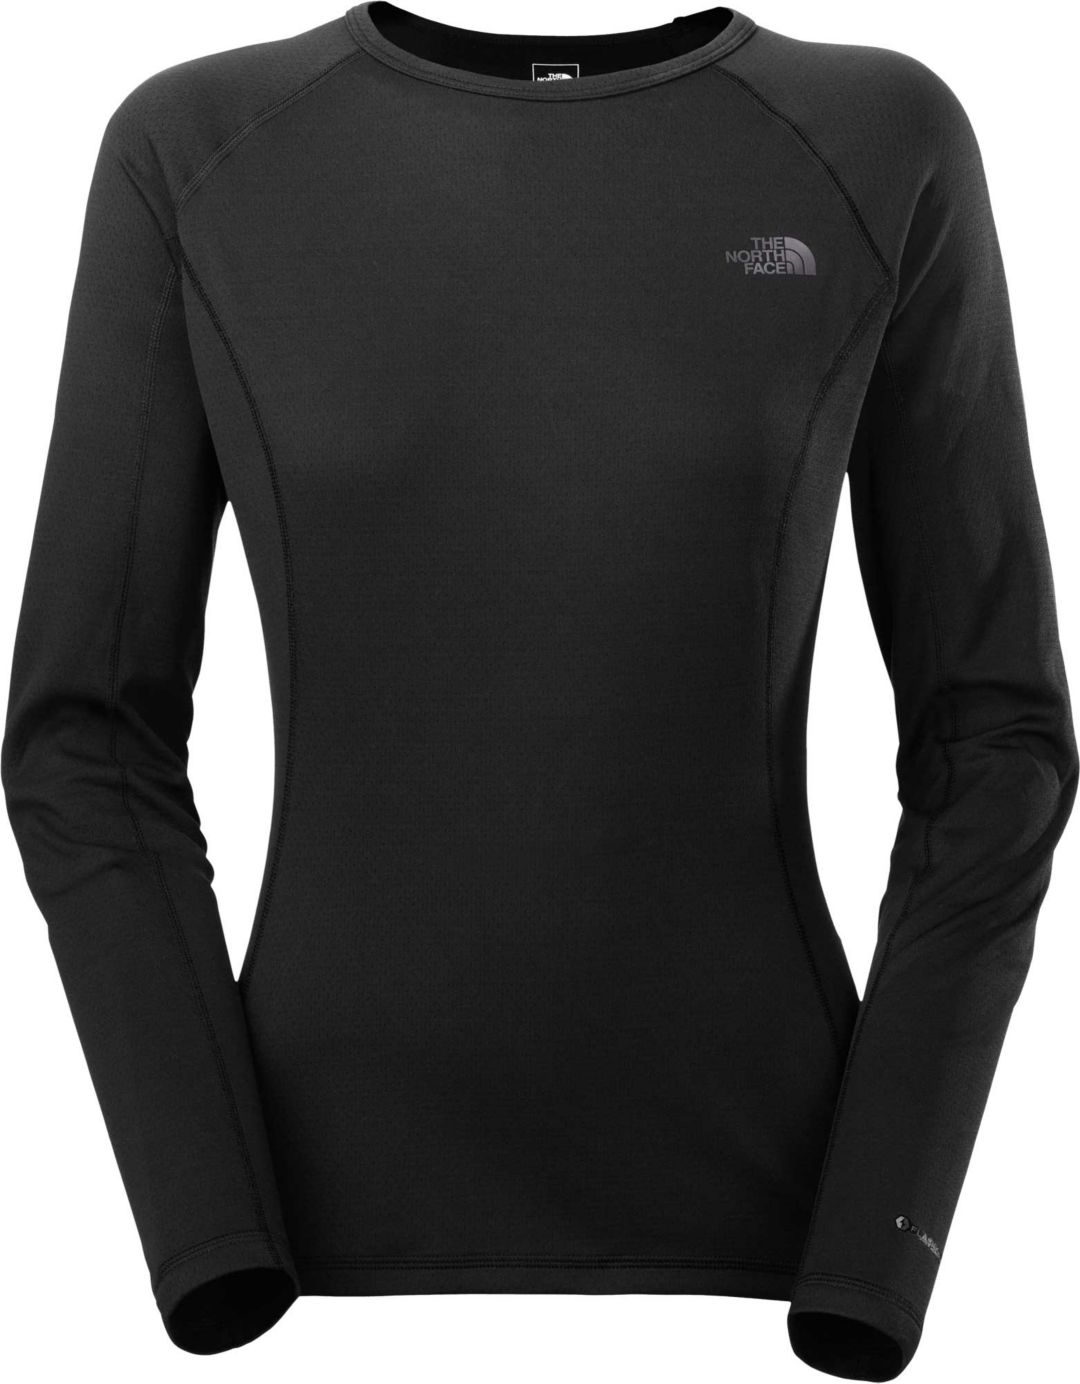 03c6340e6 The North Face Women's Warm Baselayer Shirt